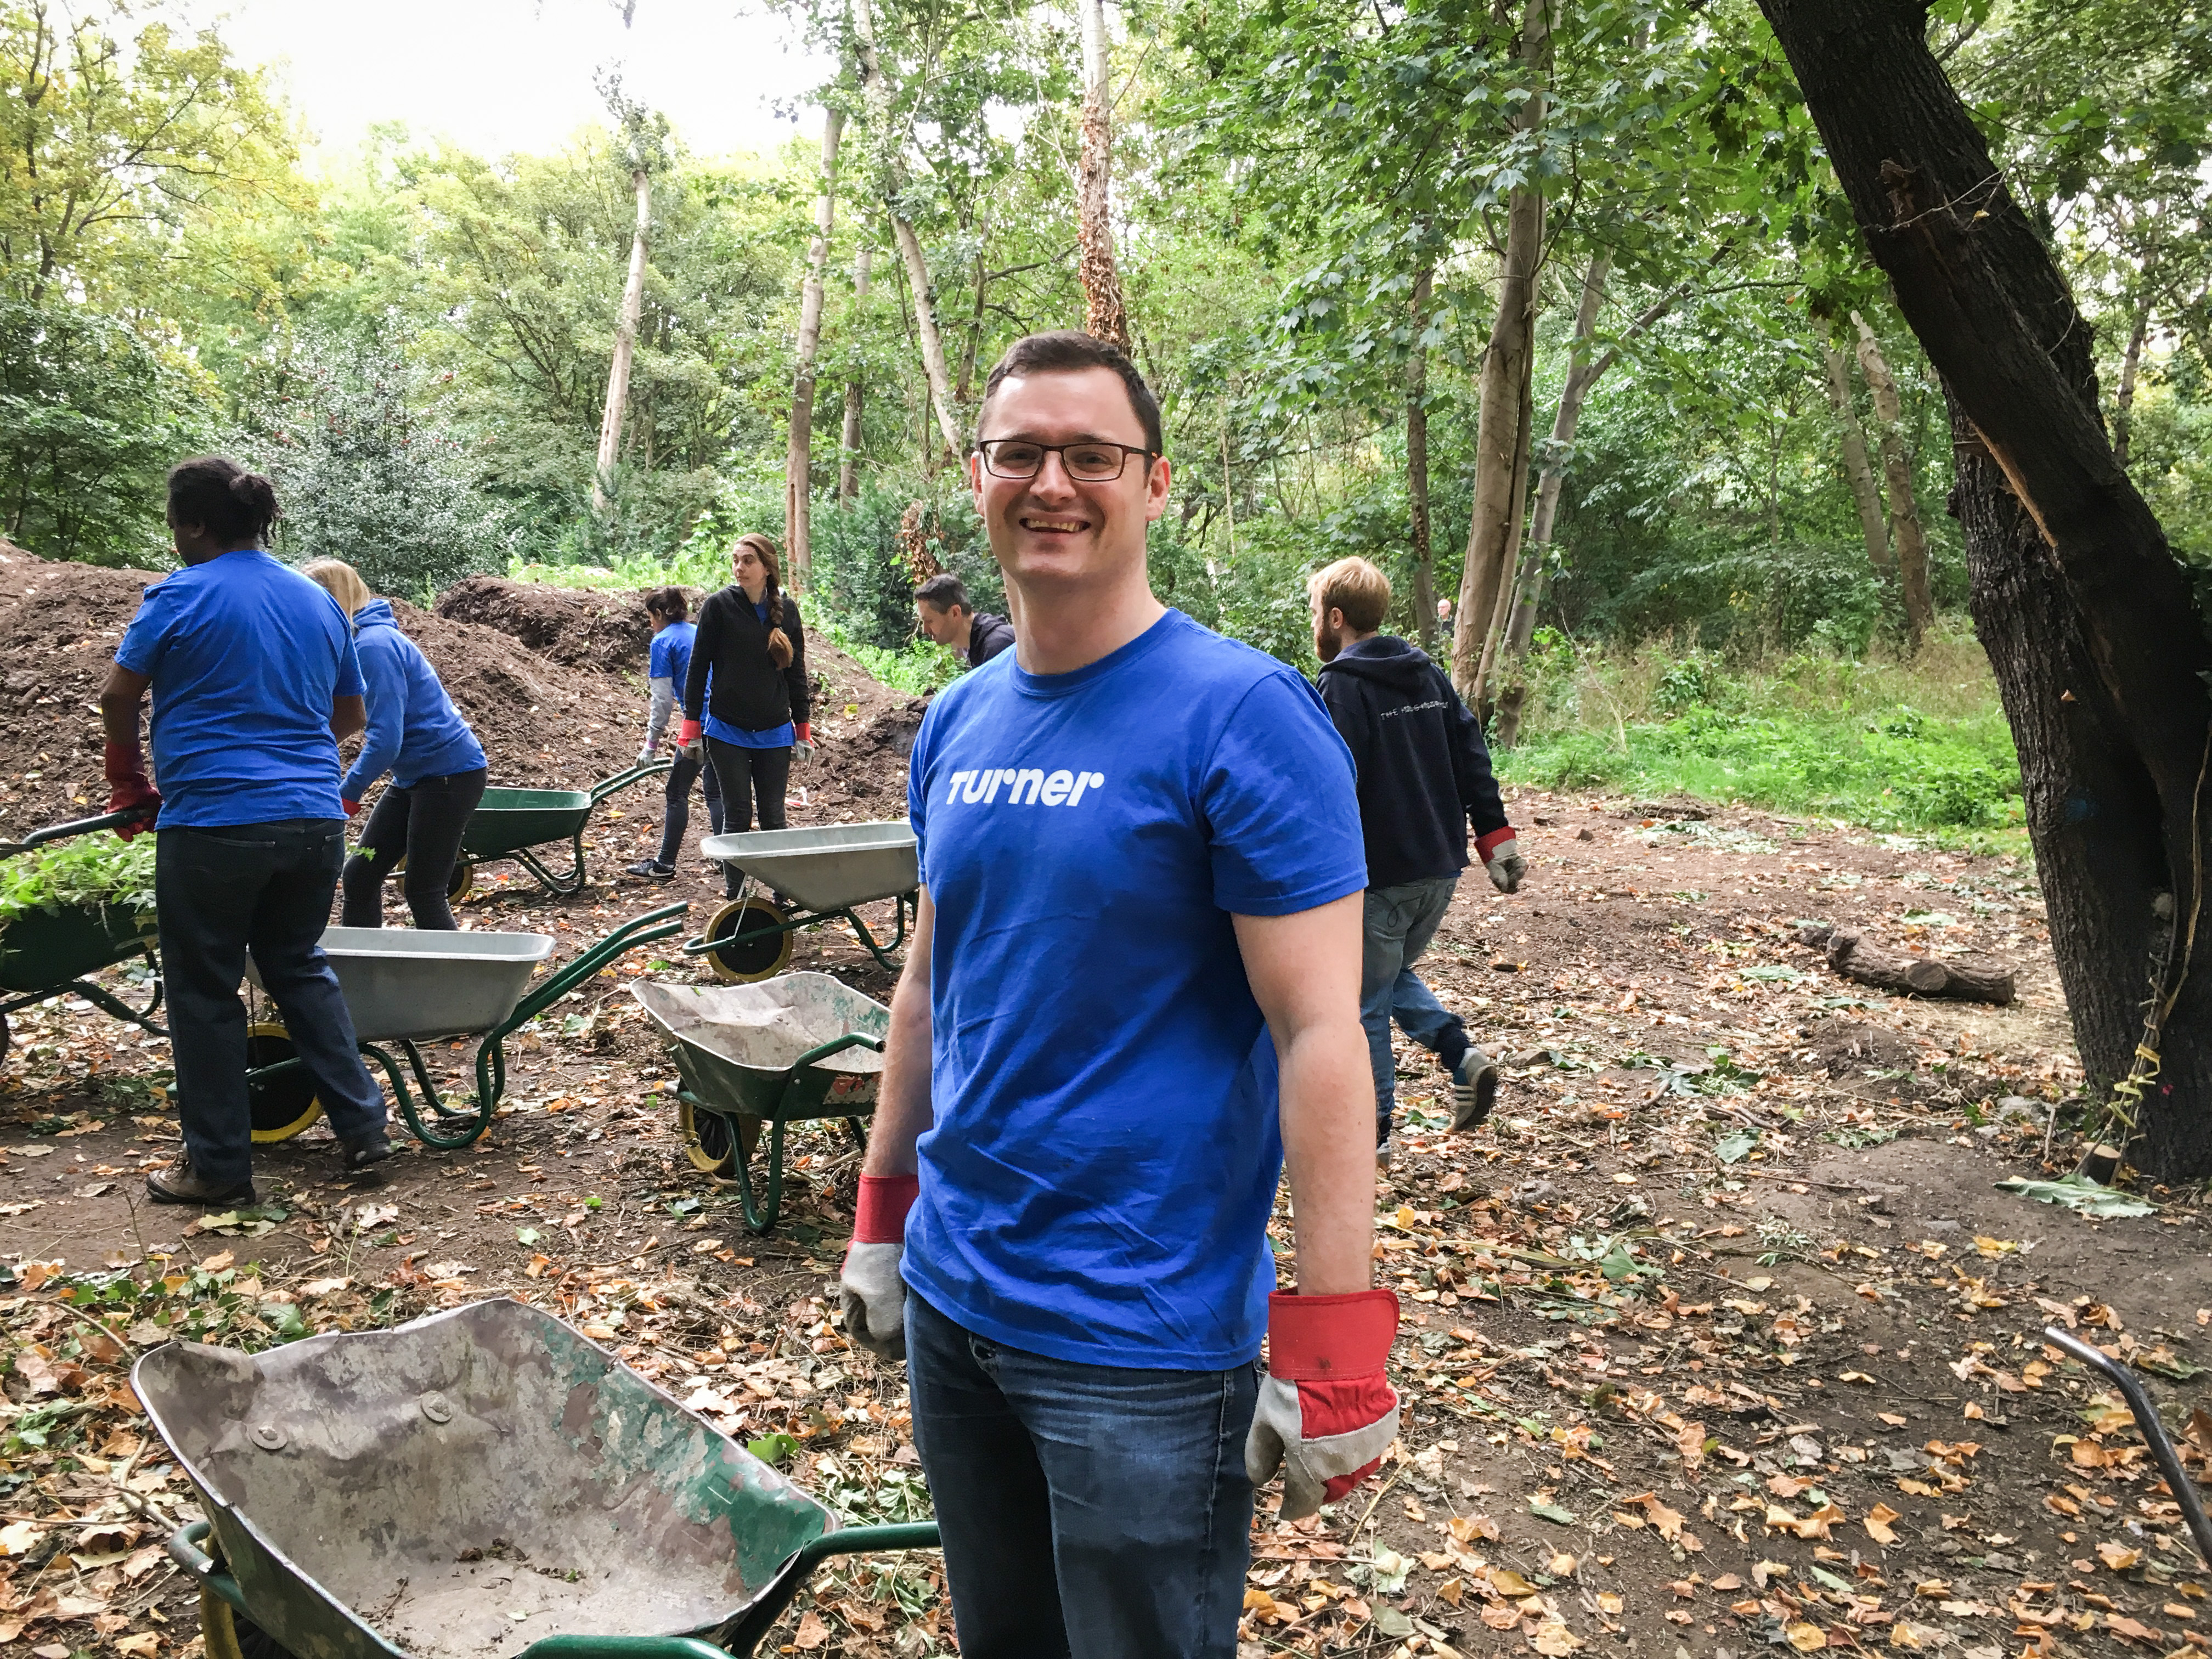 Turner Volunteer Day in London